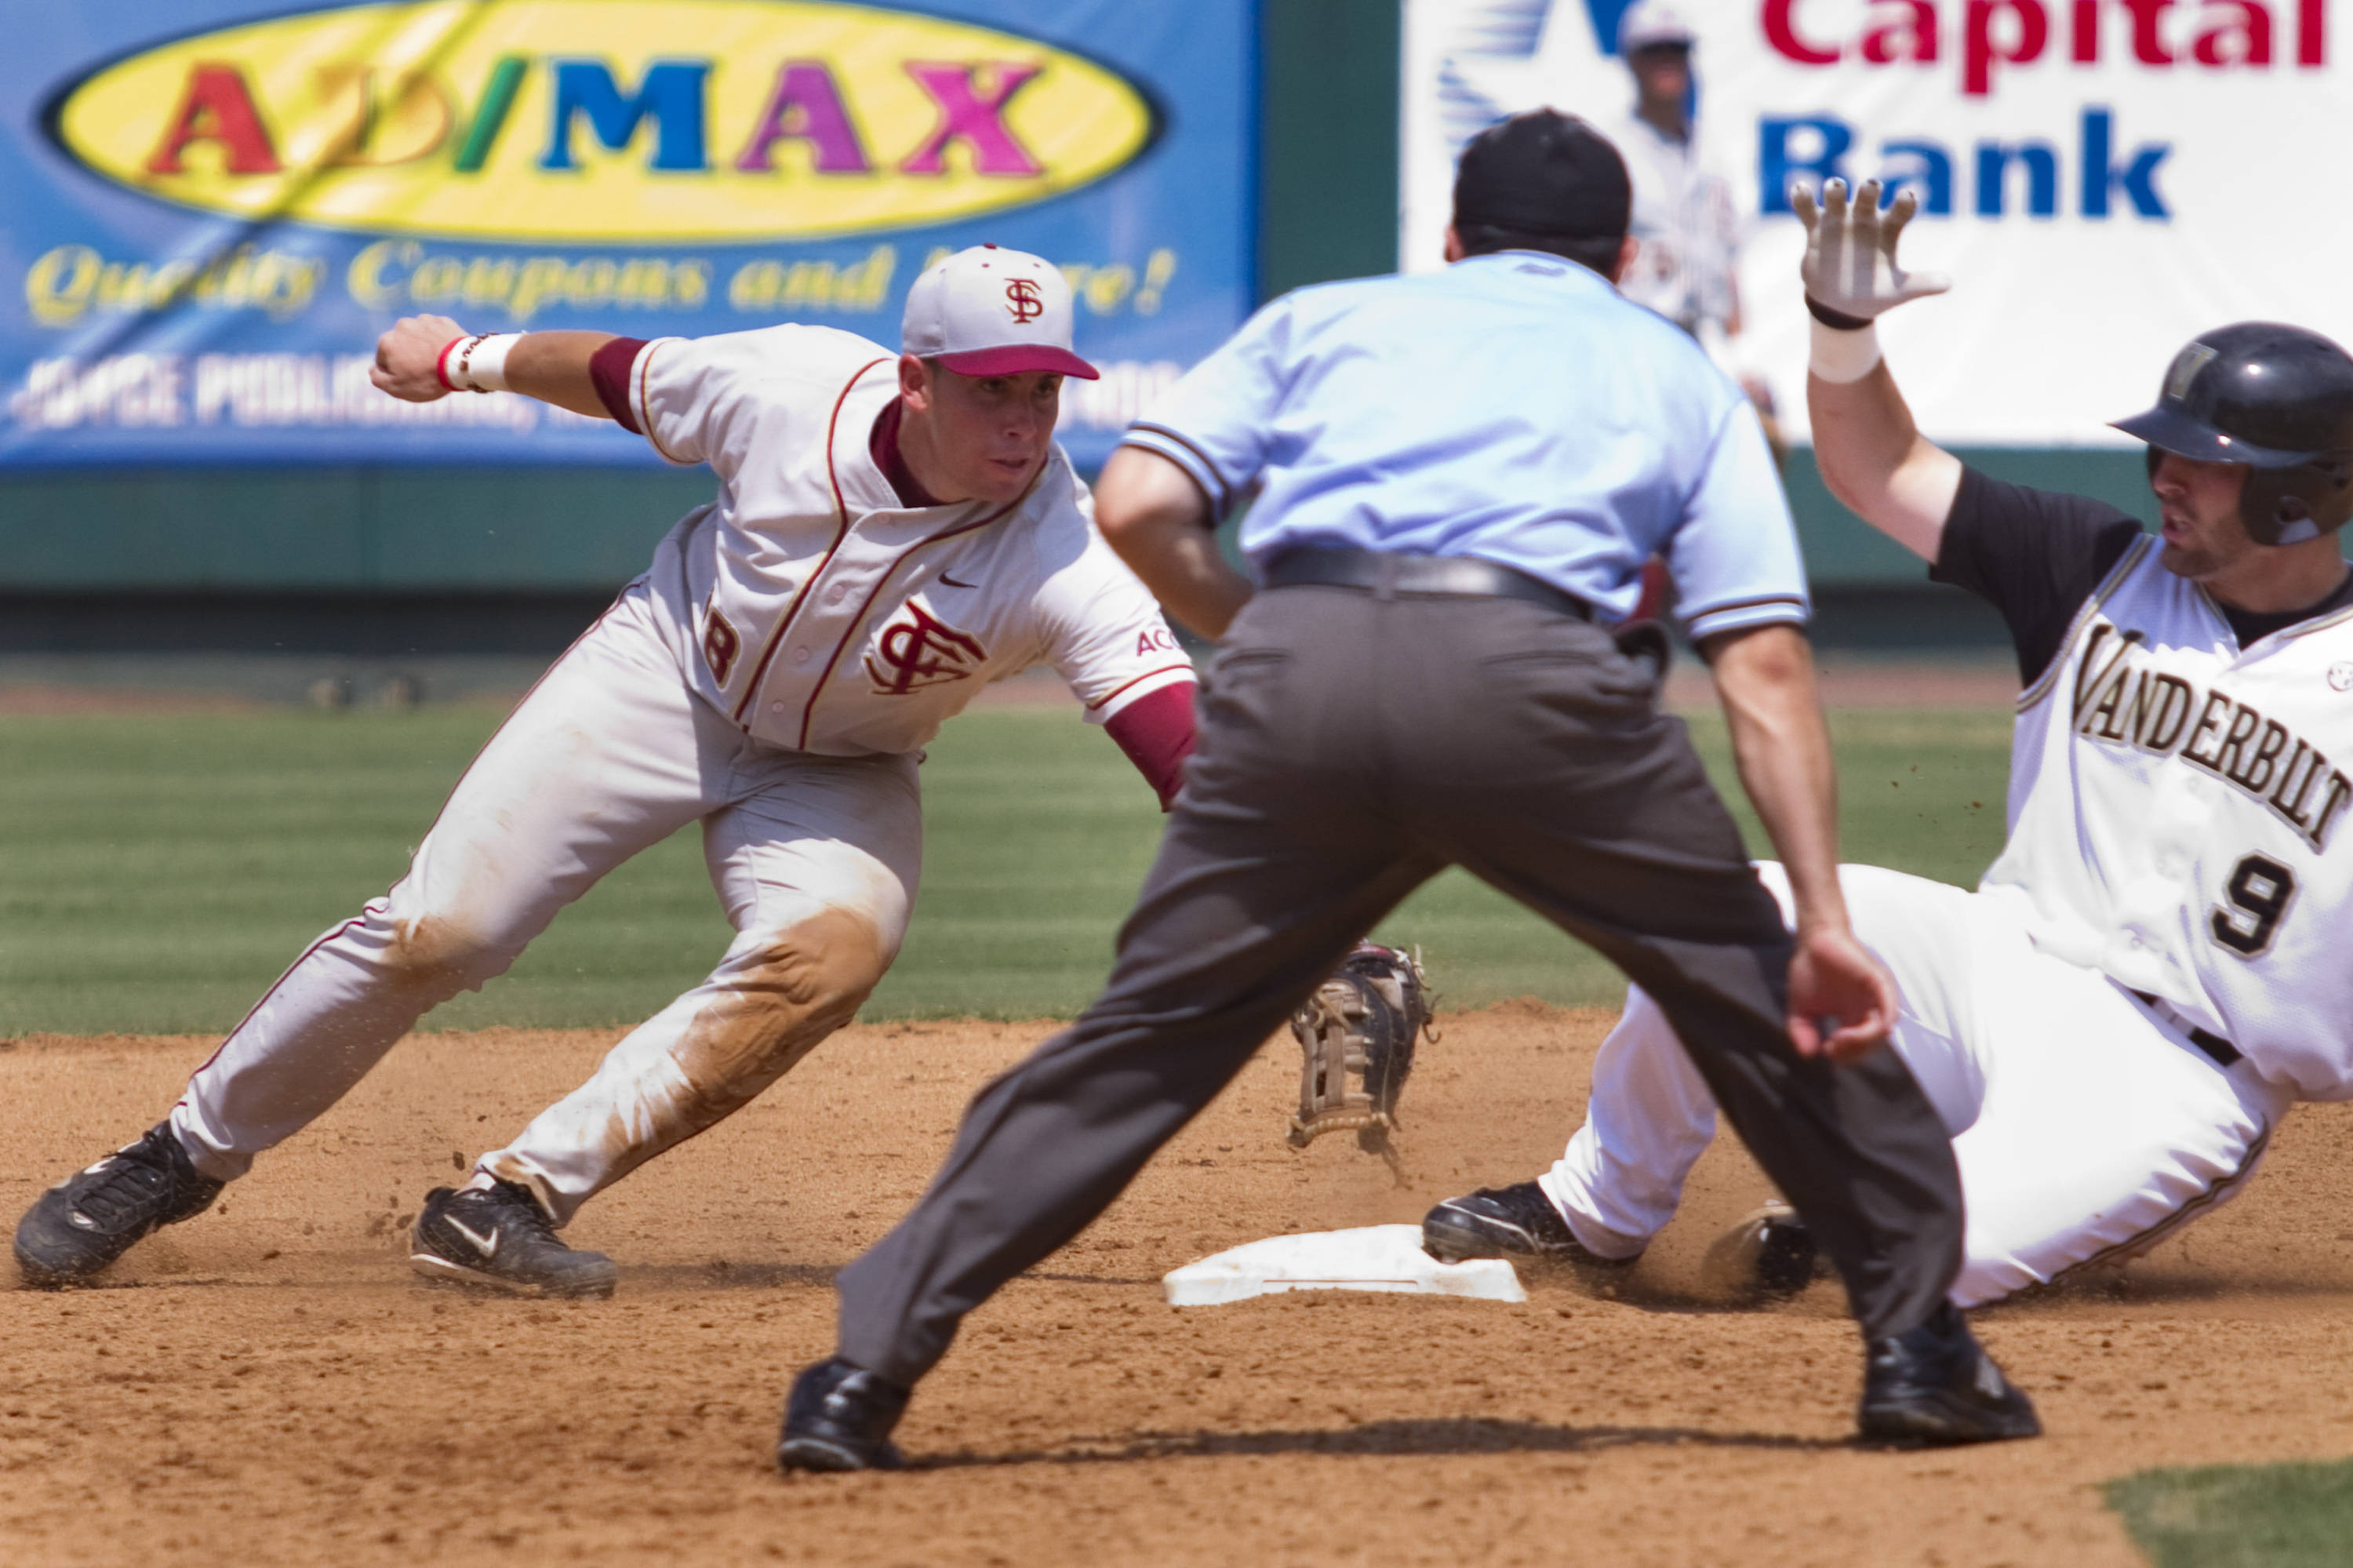 Stephen Cardullo (38) lunges to tag out Vanderbilt's Curt Casali (9) at second in the bottom of the eighth inning.